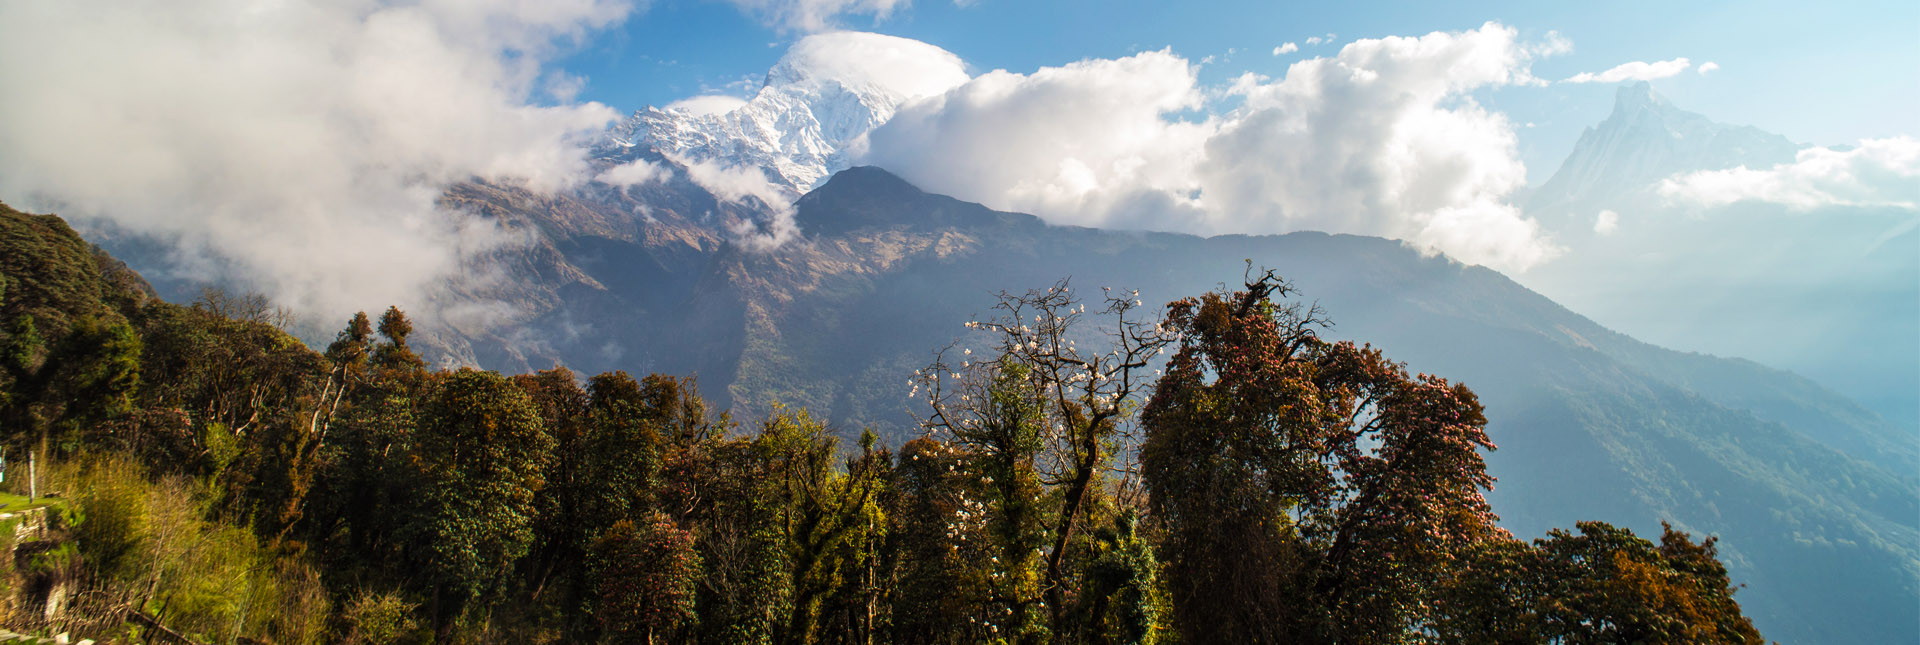 View during the trek to Annapurna base camp